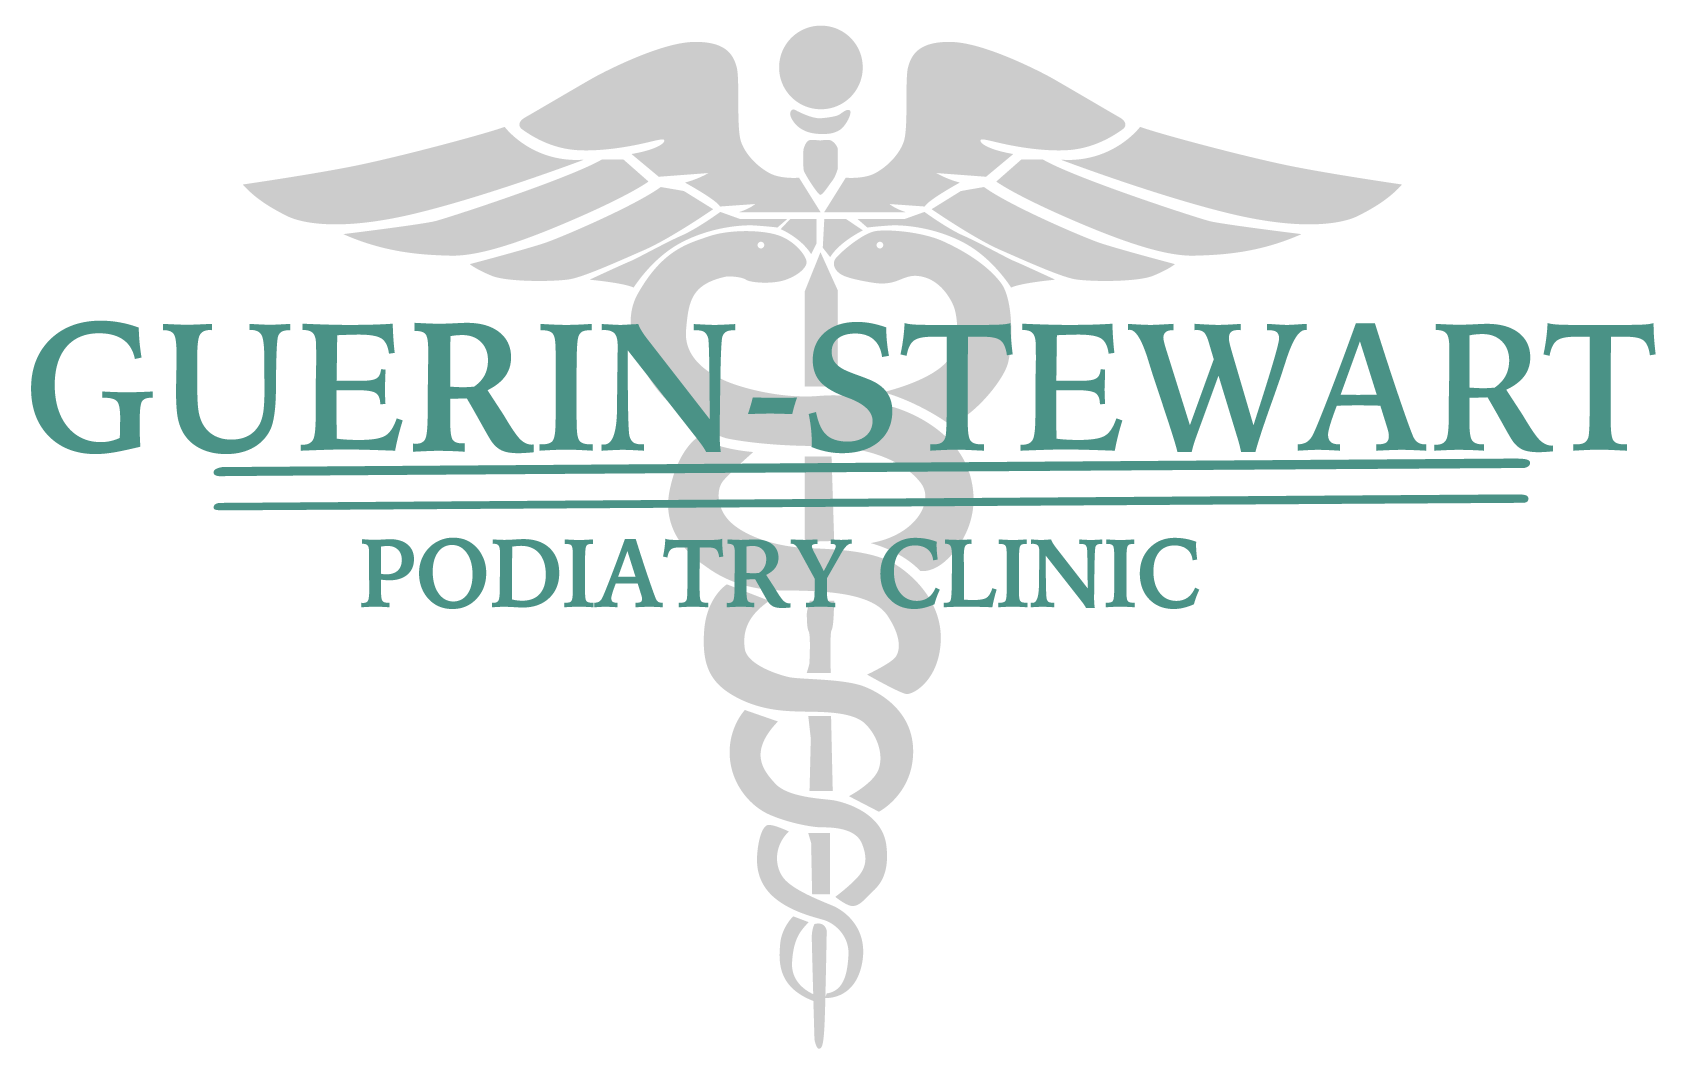 Guerin-Stewart Podiatry Clinic